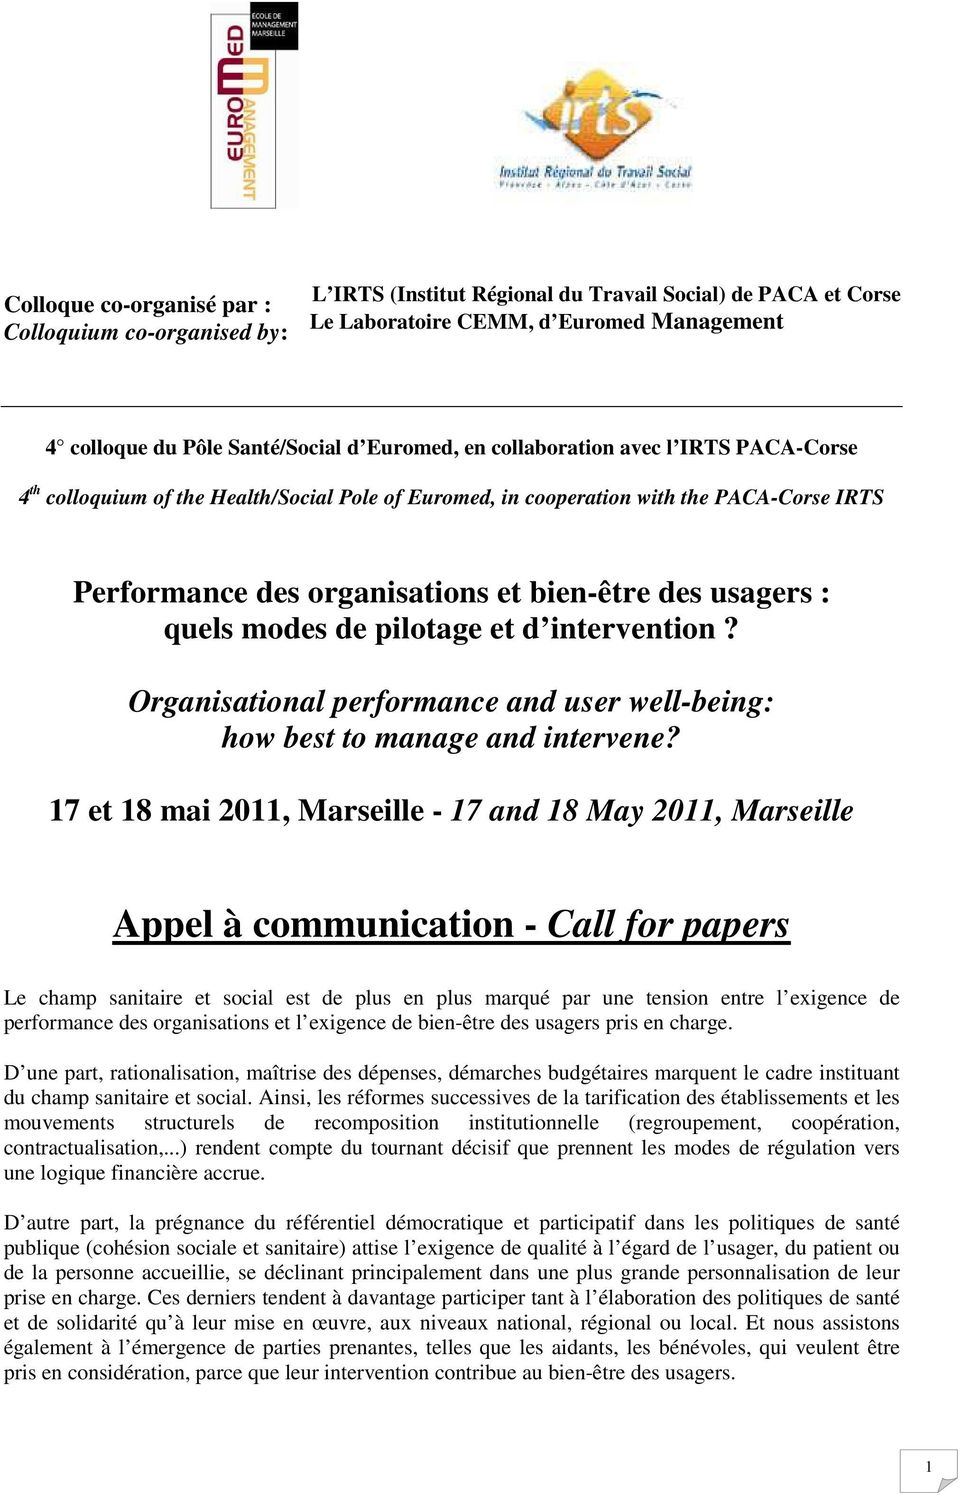 quels modes de pilotage et d intervention? Organisational performance and user well-being: how best to manage and intervene?